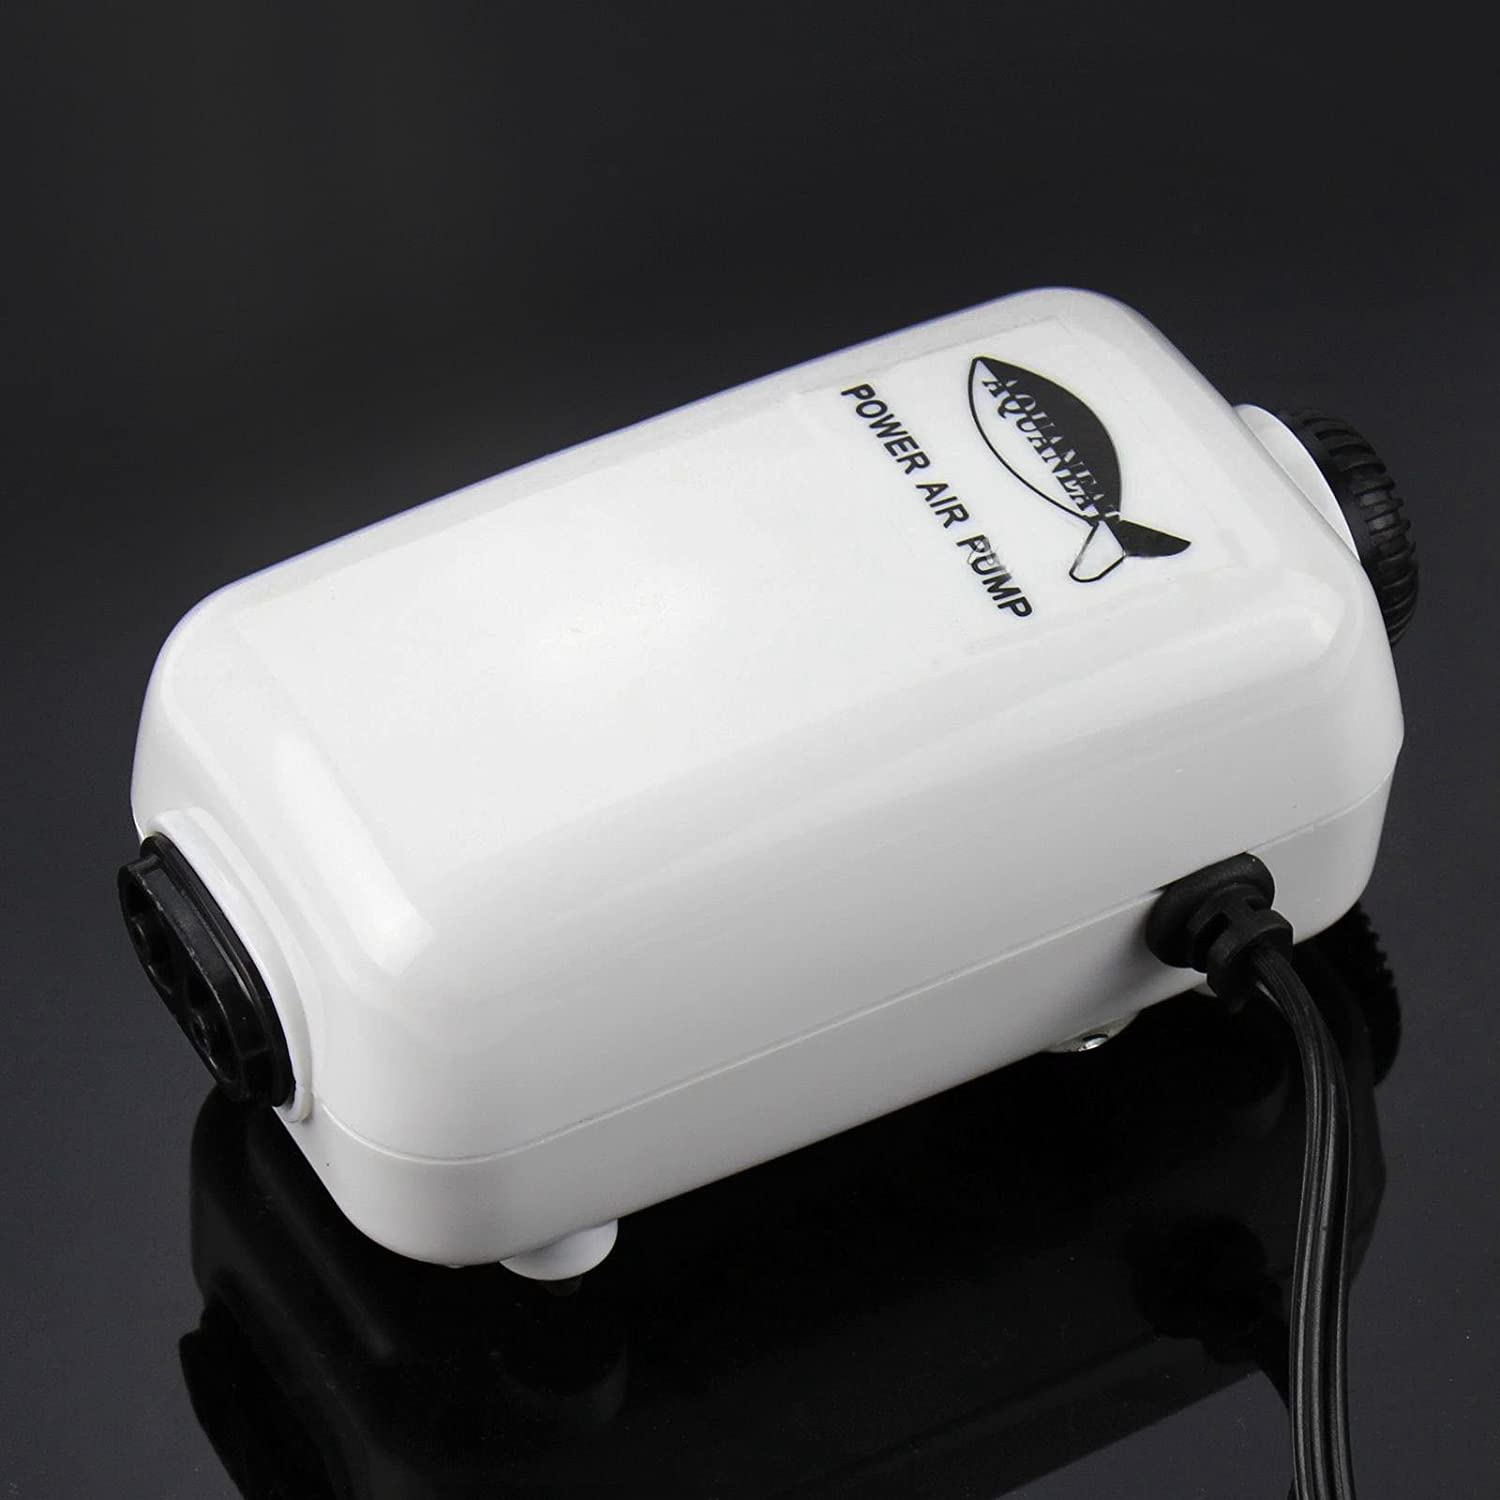 New Aquarium Adjustable Air Pump Two Outlets Fish Tank 65GPH Up to 125Gal by Aquaneat